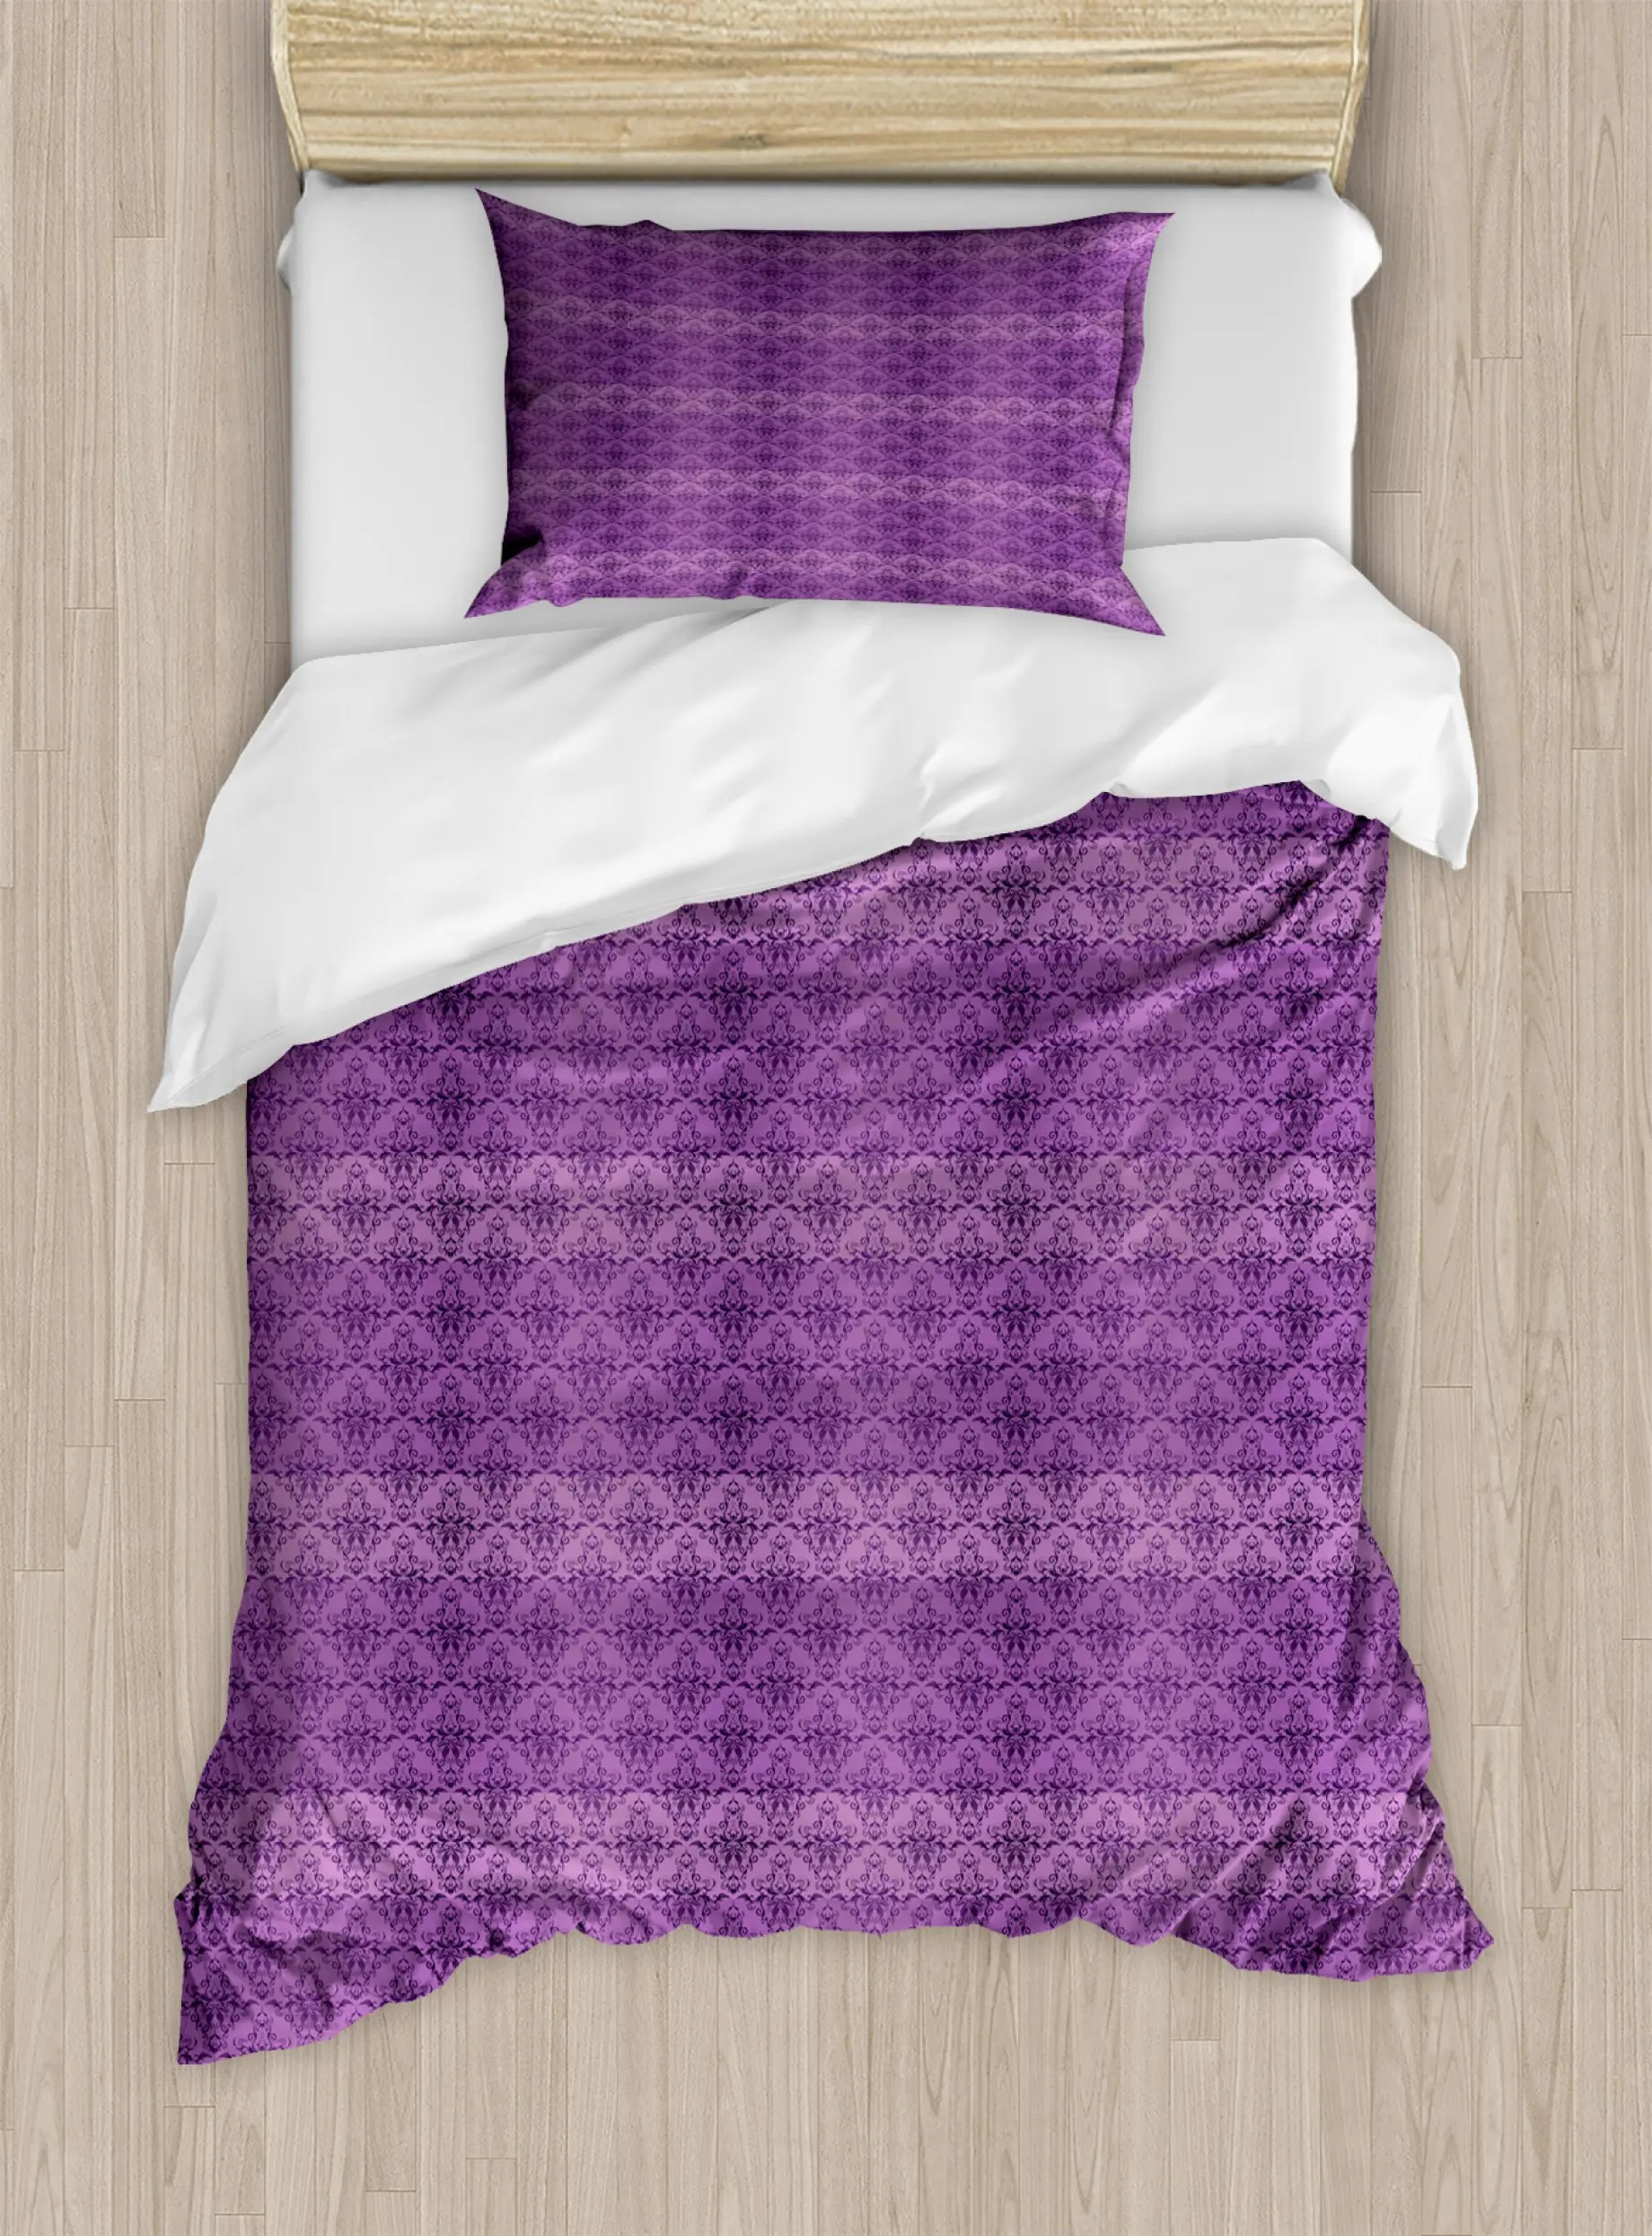 Damask Duvet Rococo Damask Purple Duvet Cover Set